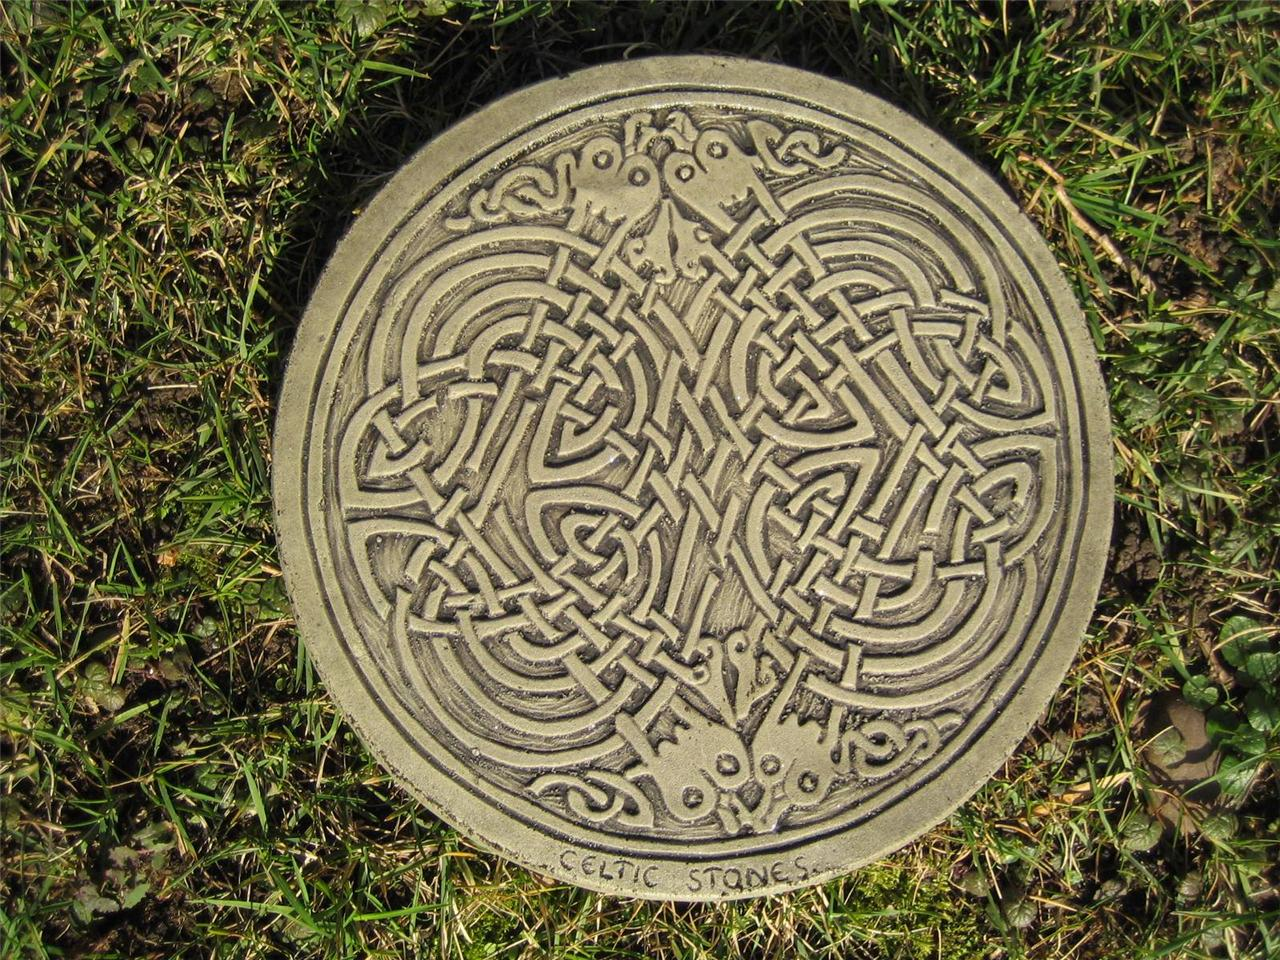 Square knot celtic stepping stone garden ornament for Celtic garden designs